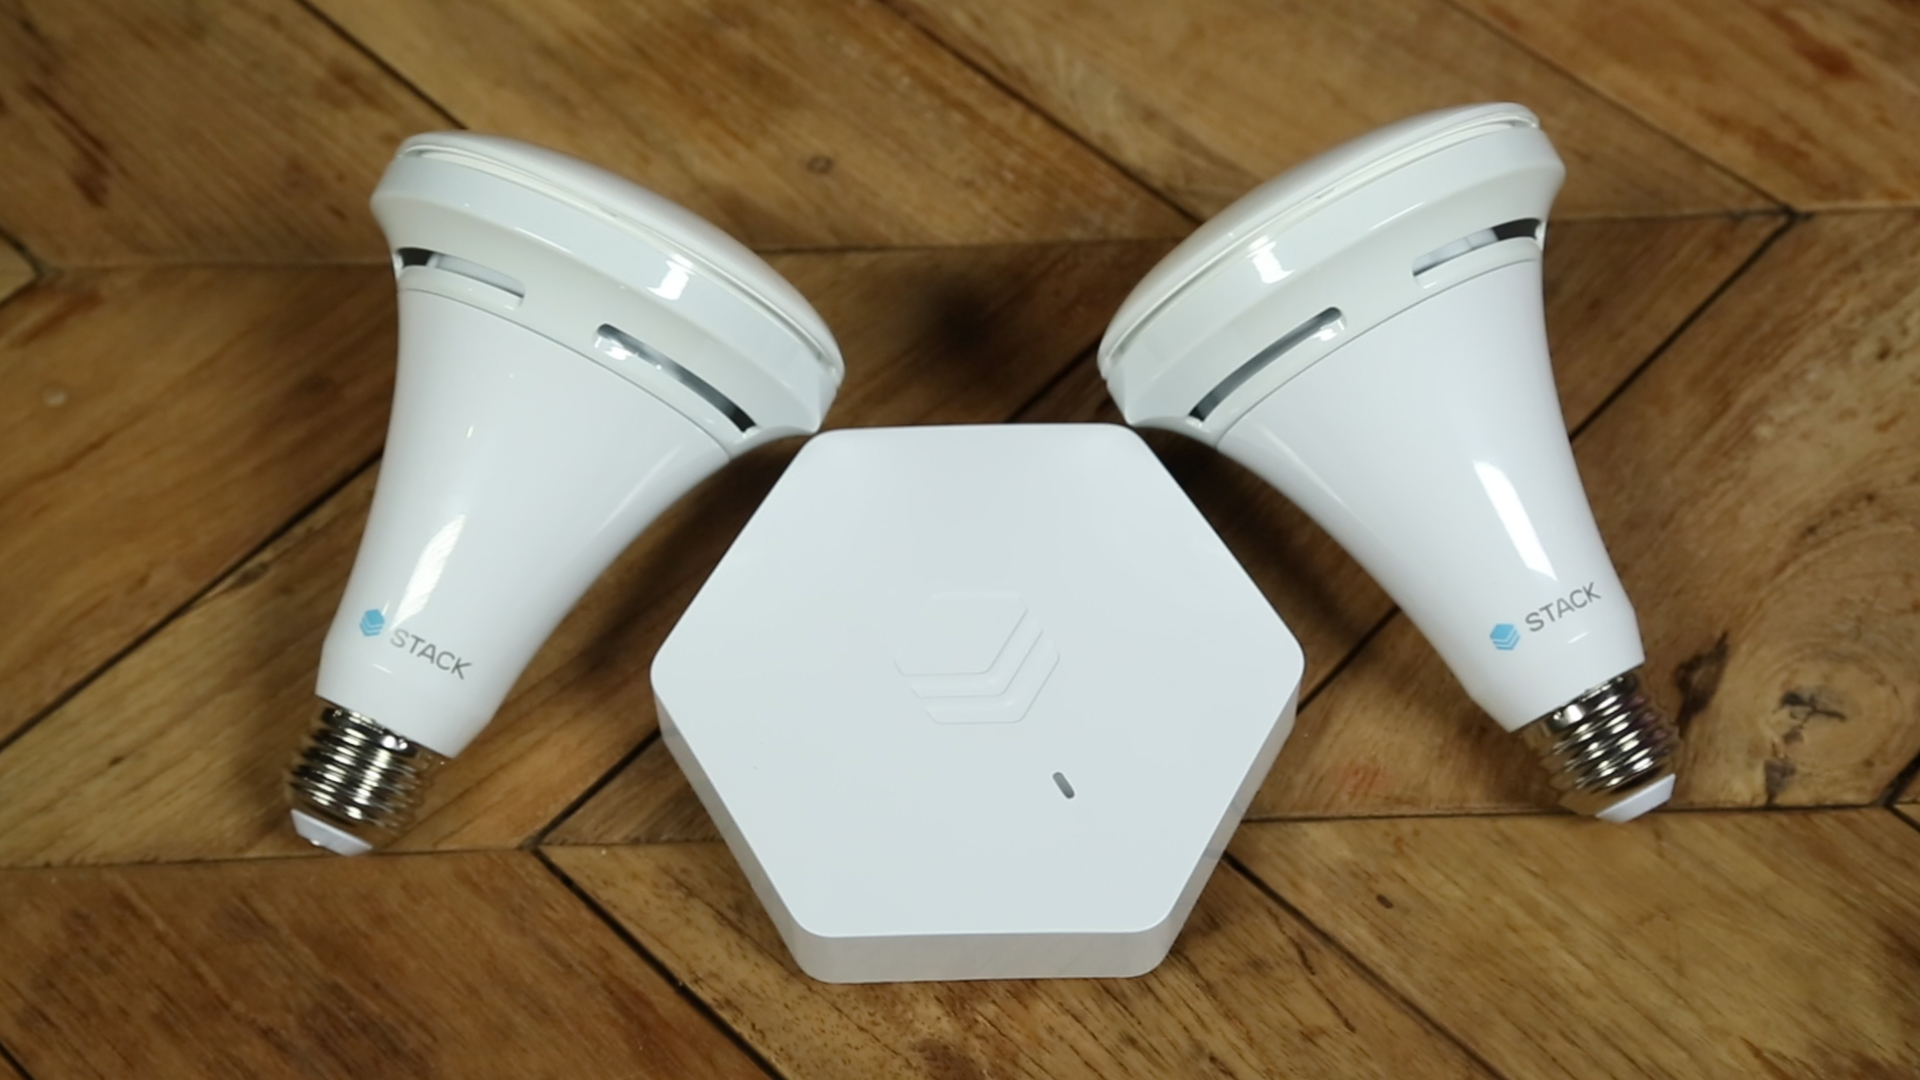 Stack's sensor-enabled smart bulbs left us impressed